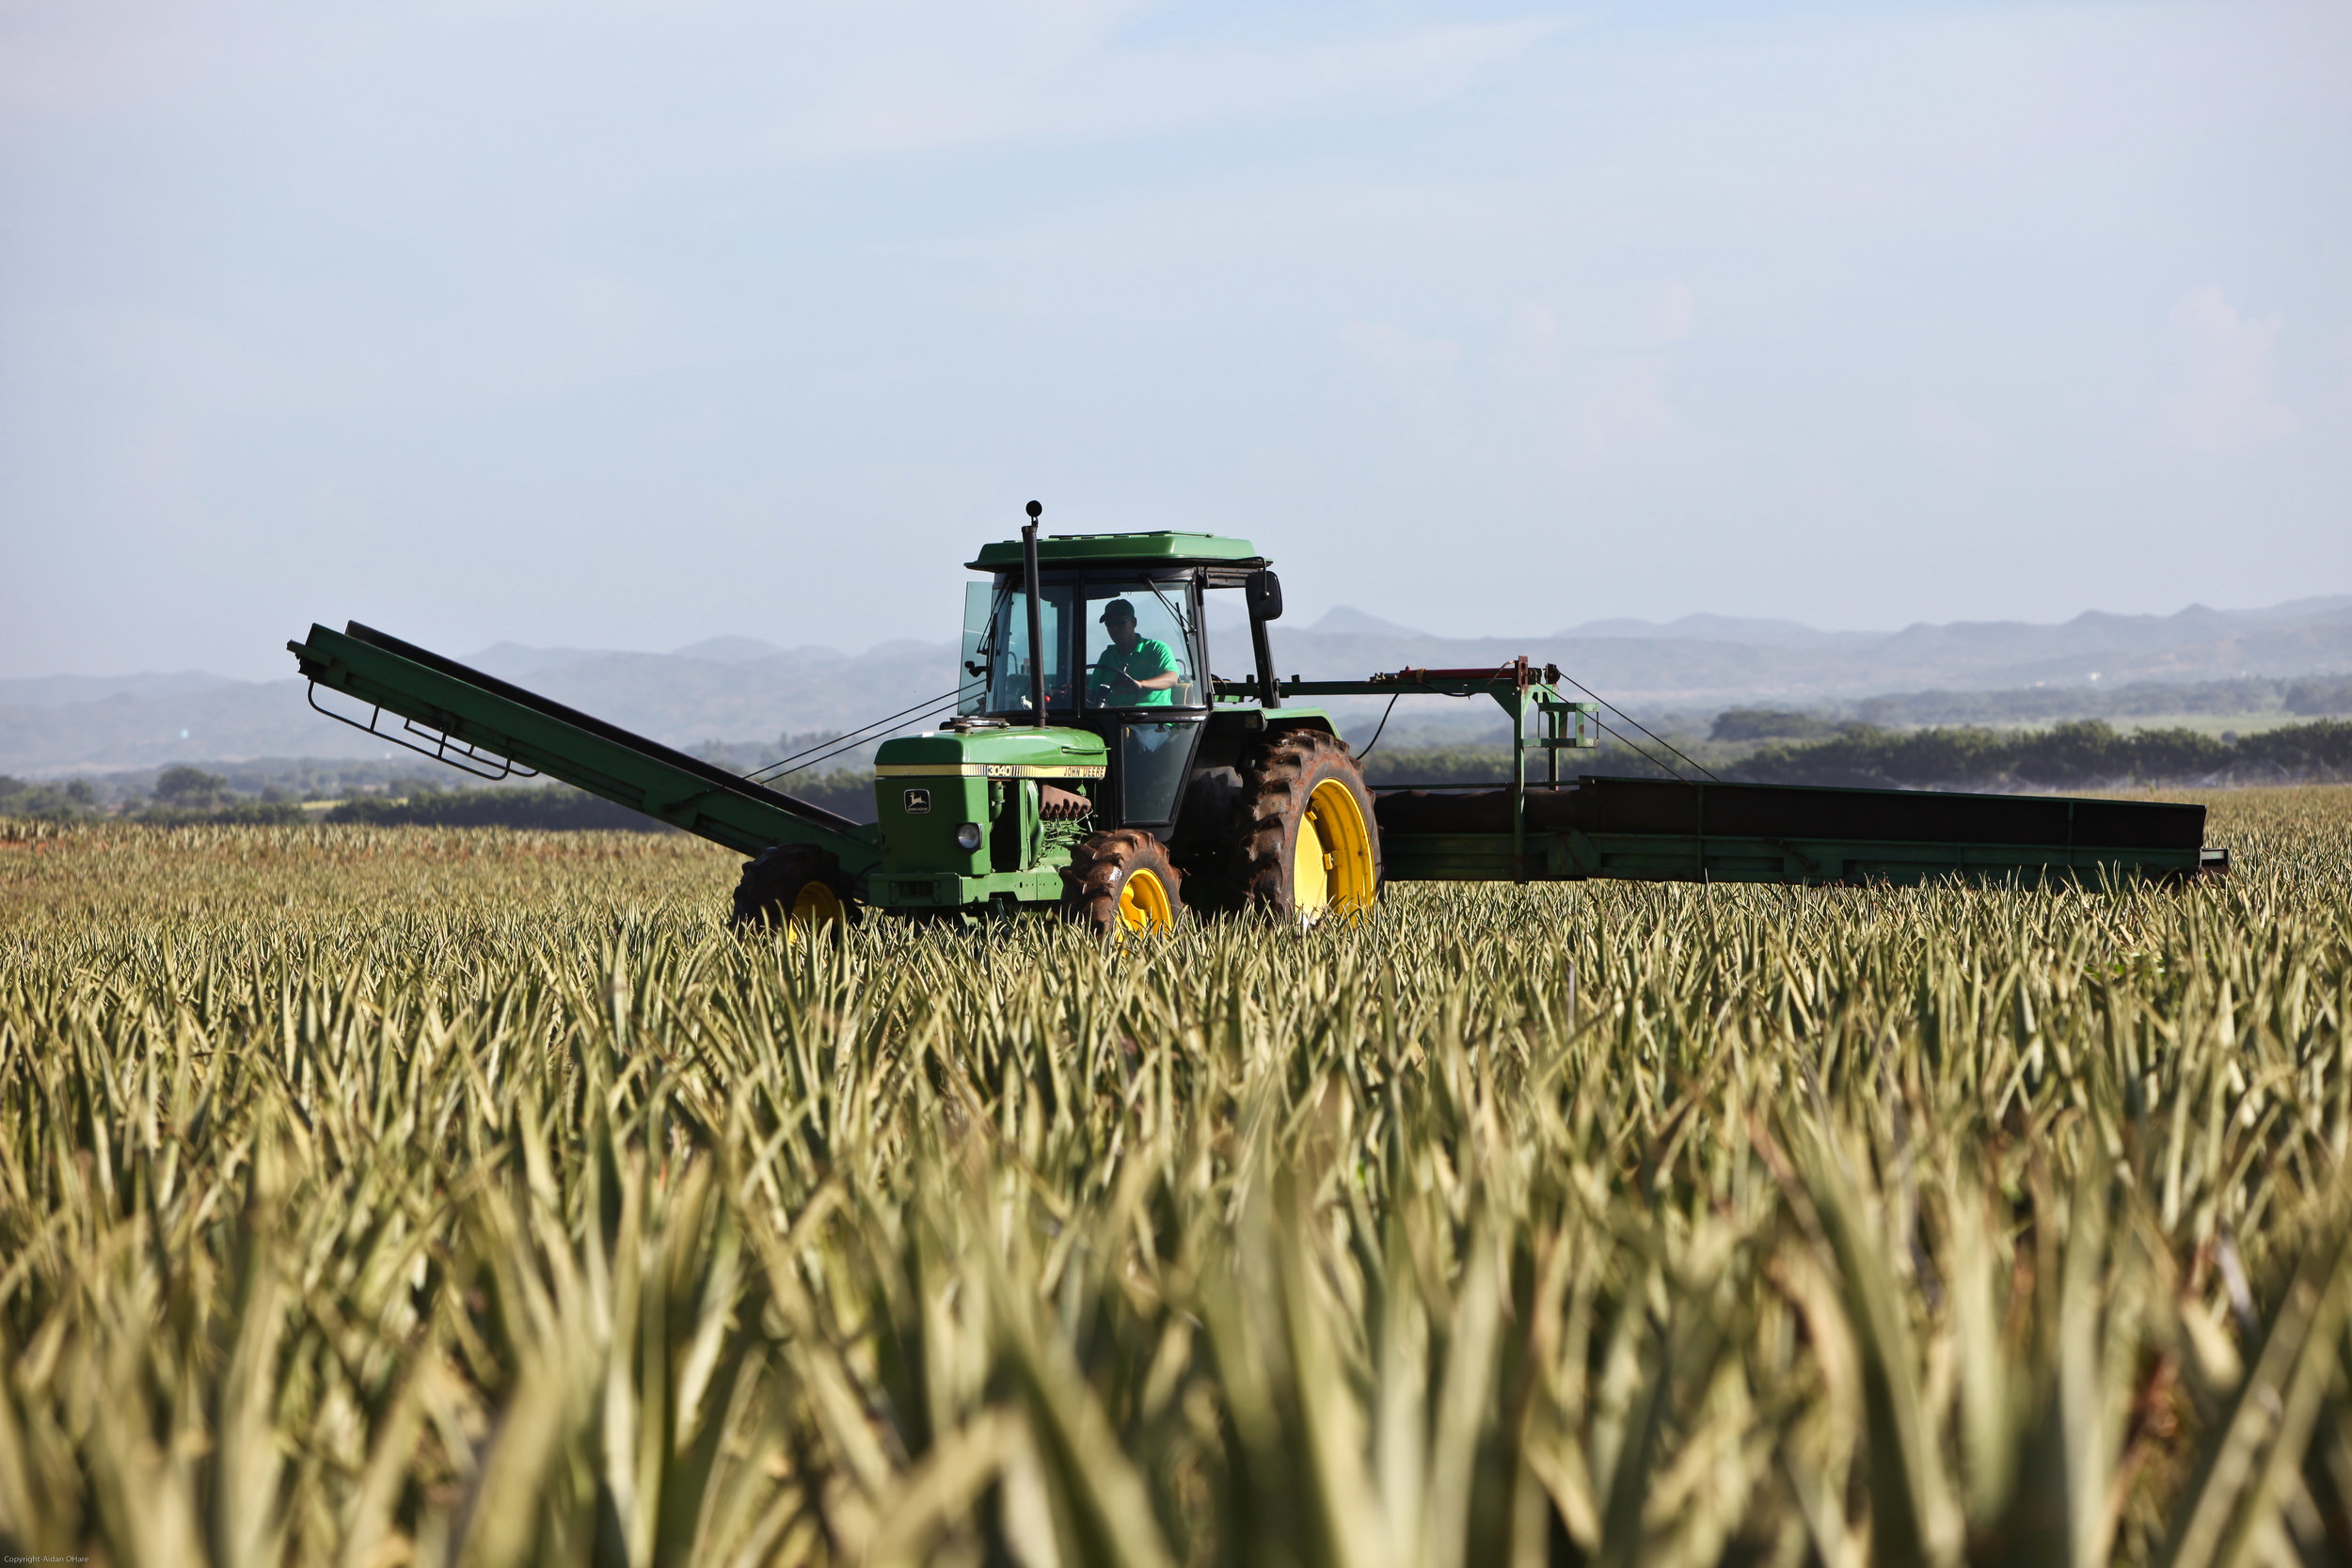 'Undeniable shift in our industry': Agribusiness Syngenta eyes new green farming goals -